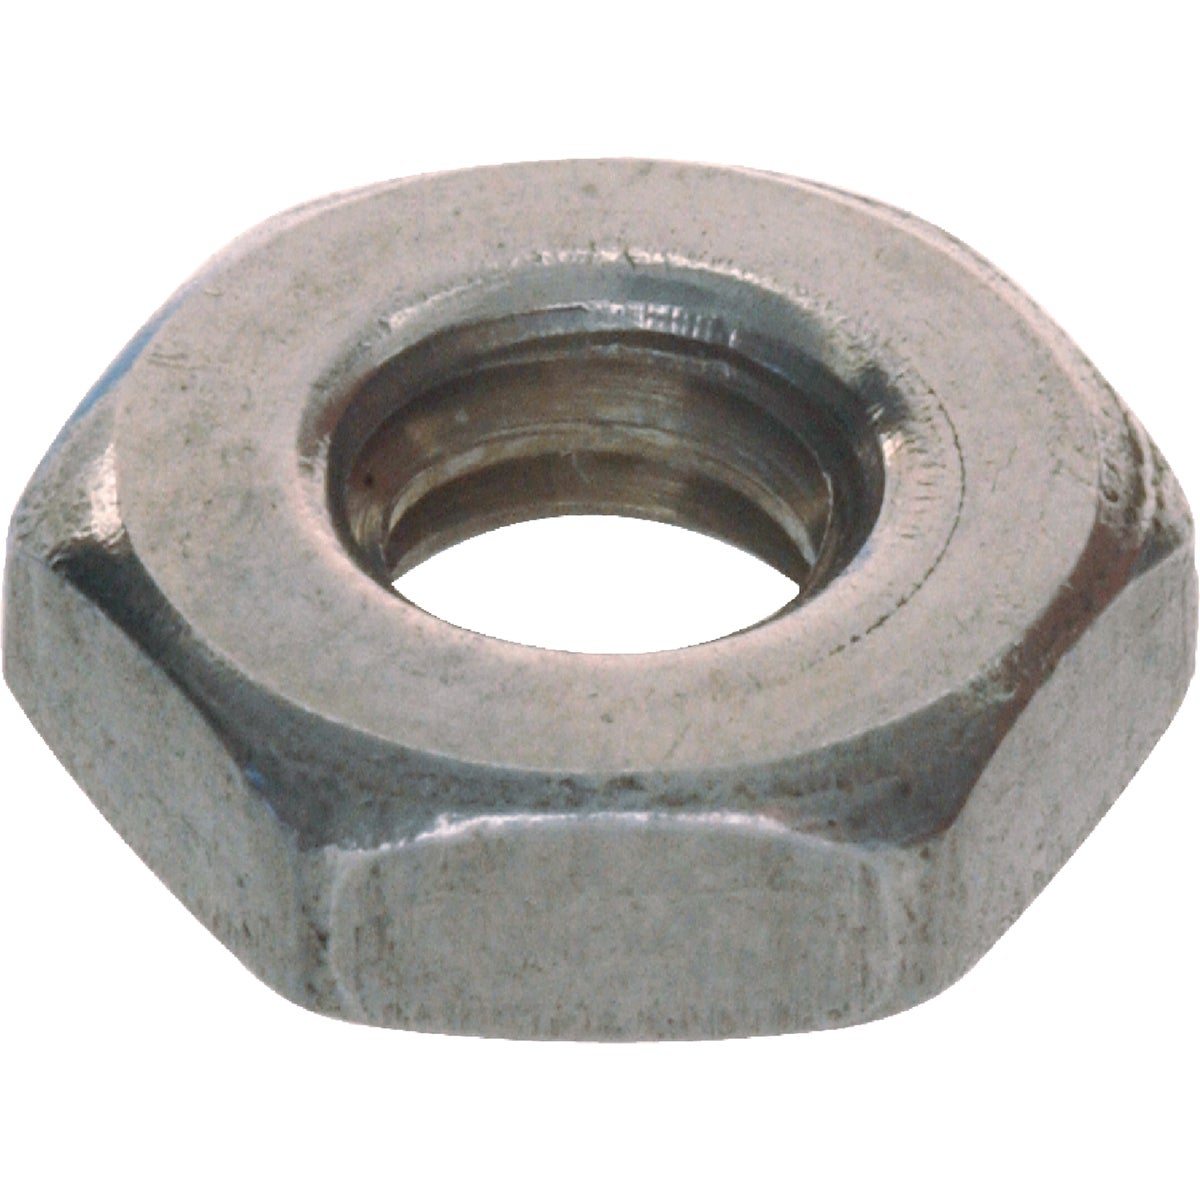 6-32 SS MACH SCREW NUT